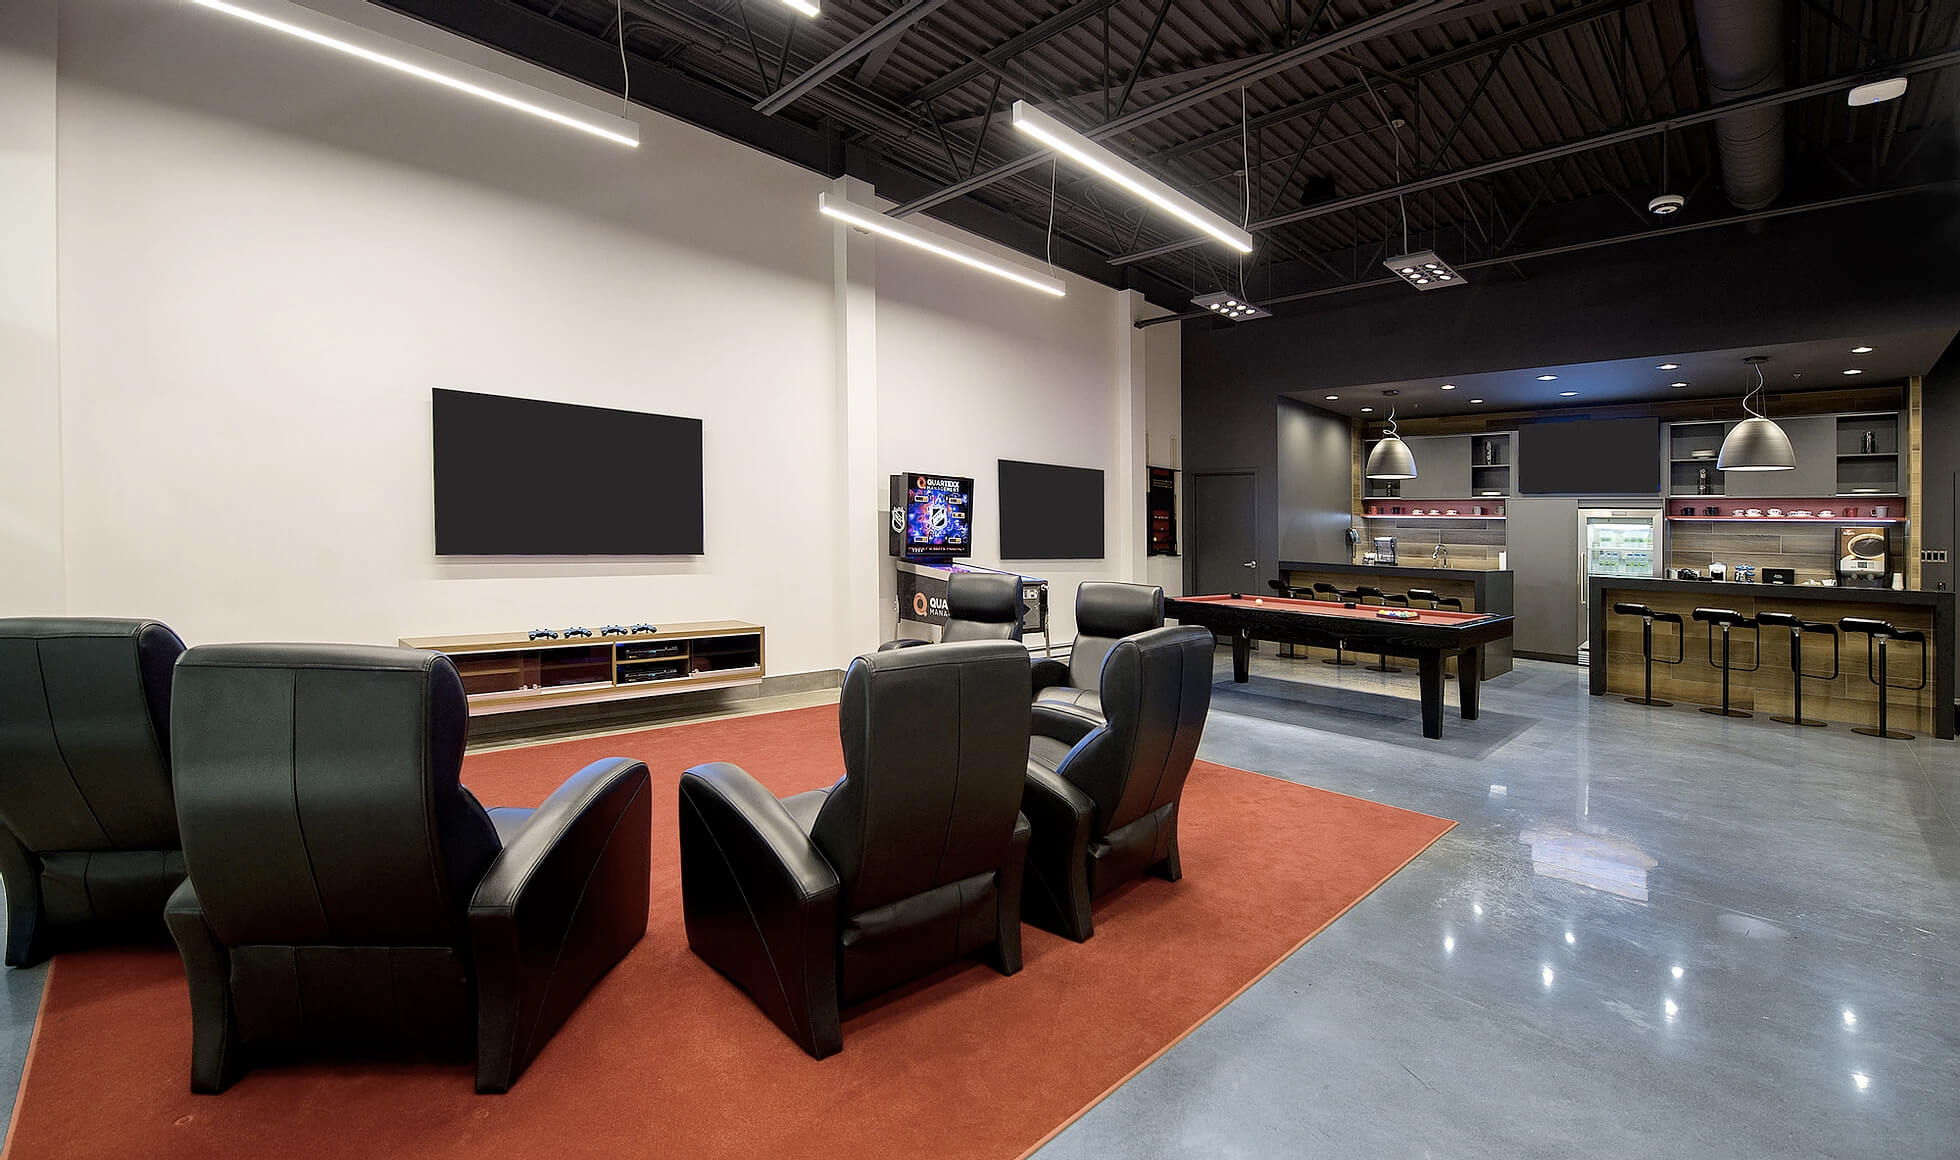 The player lounge at Hockey Etcetera with 4 comfy chairs overlooking a TV and gaming console. In the background is a nice kitchen and pool table.